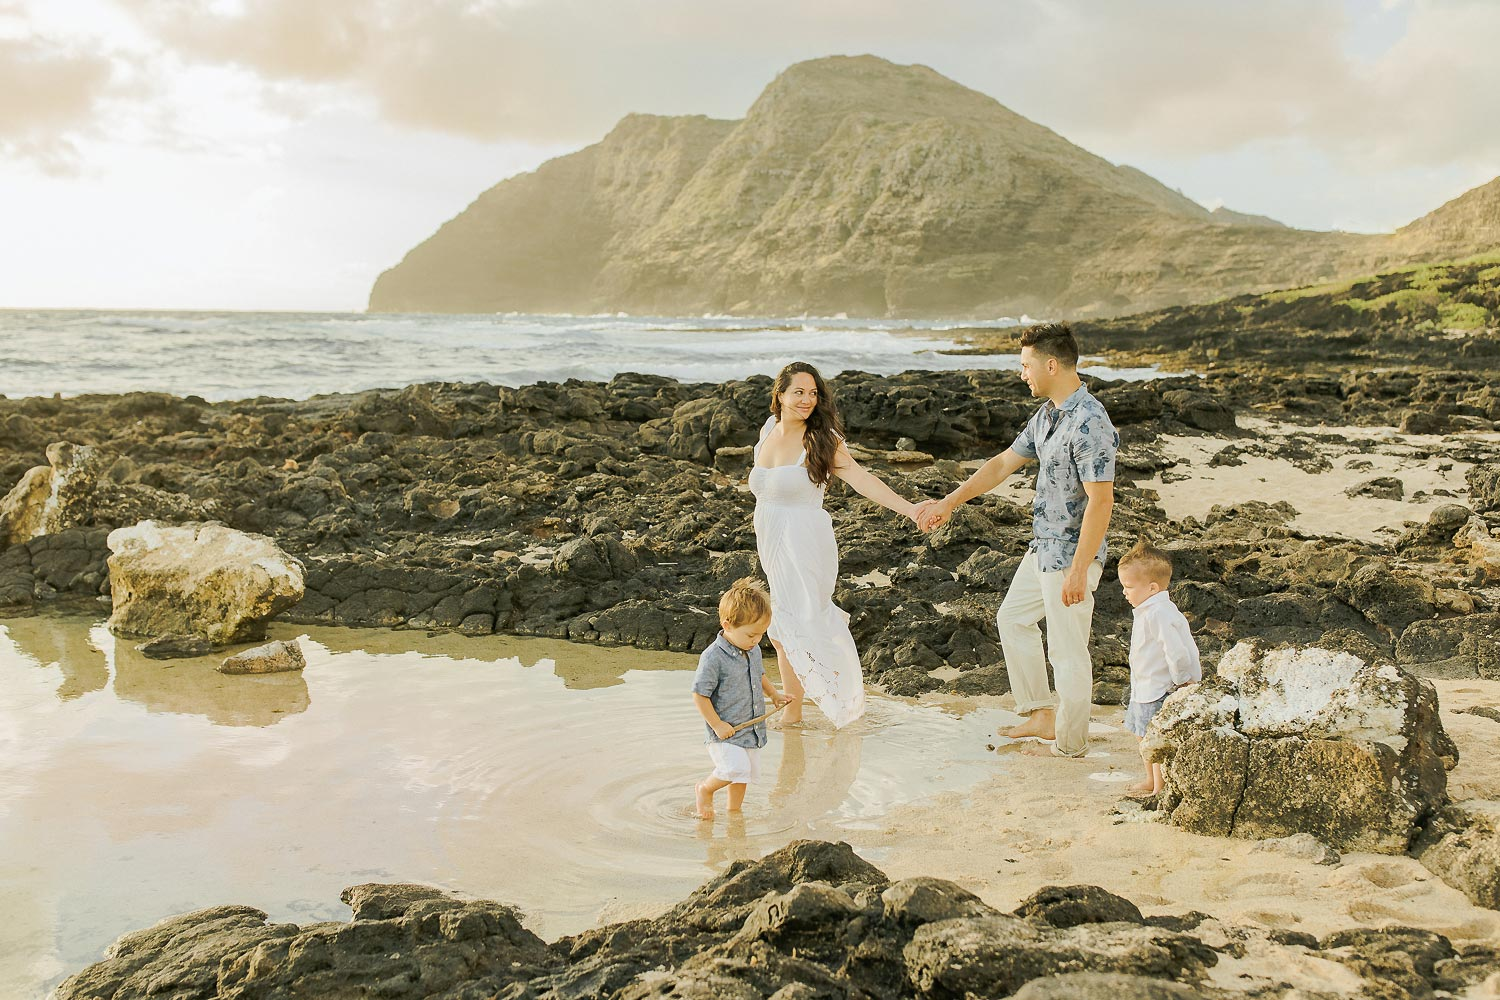 maui family photography session on the beach